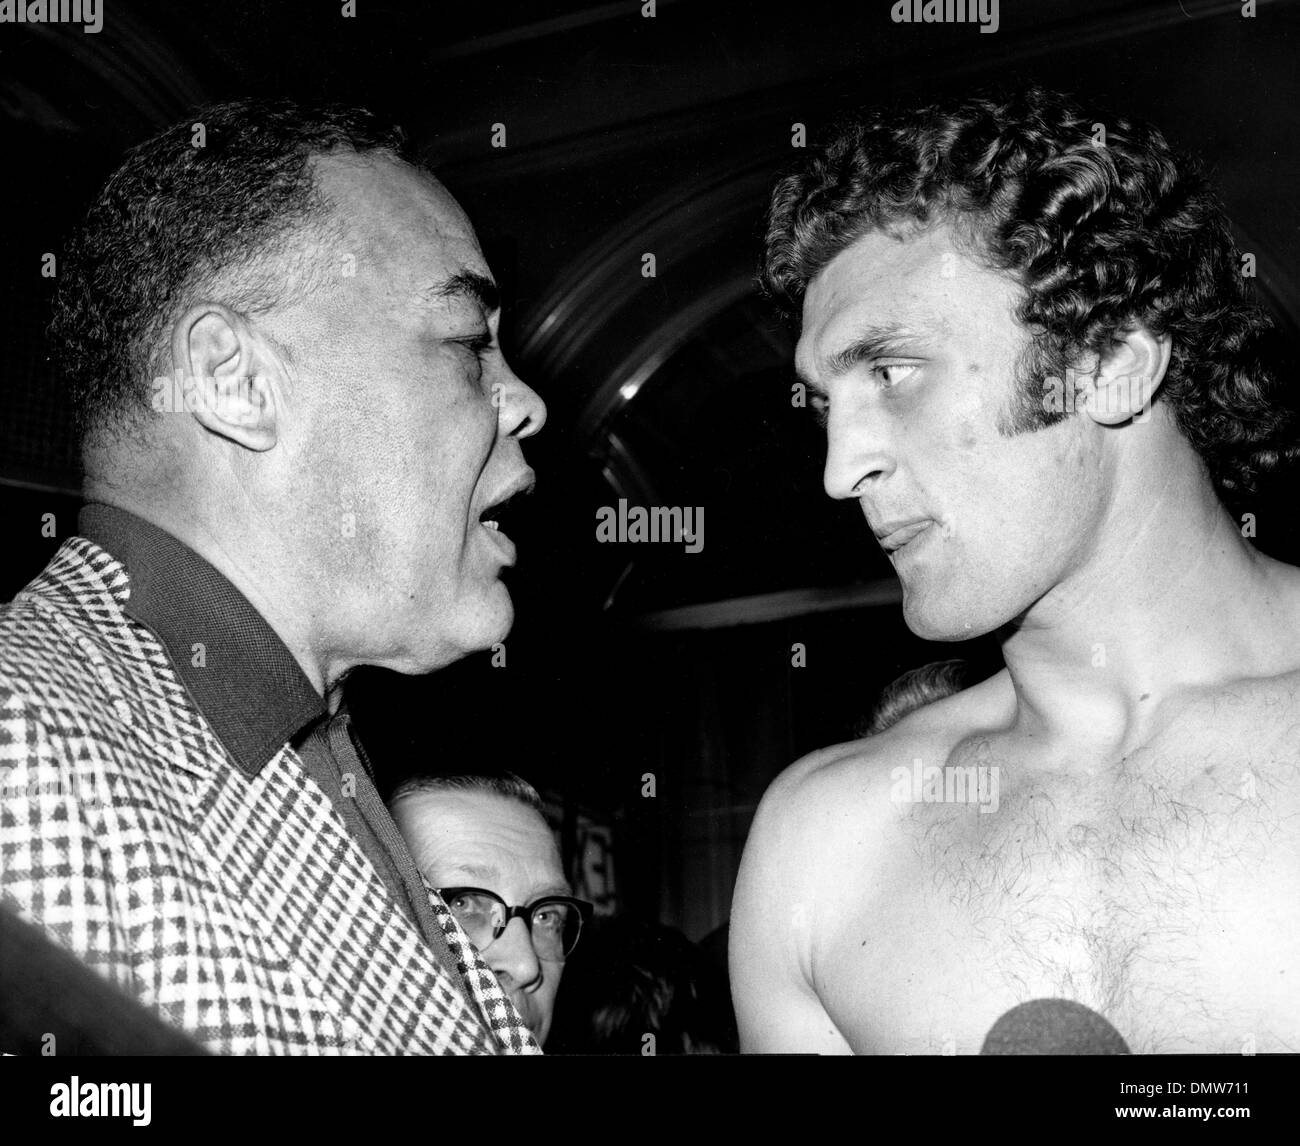 Jan 16, 1973; London, England, UK; JOE LOUIS, the former world heavyweight champion, has a word with JOE BUGNER, the European heavyweight champion, at the Horseshoe Hotel, Tottenham Court Road, where Bugner weighed in for his title defence against Holland's Rudi Lubbers at the Royal Albert Hall. (Credit Image: © KEYSTONE Pictures USA) - Stock Image